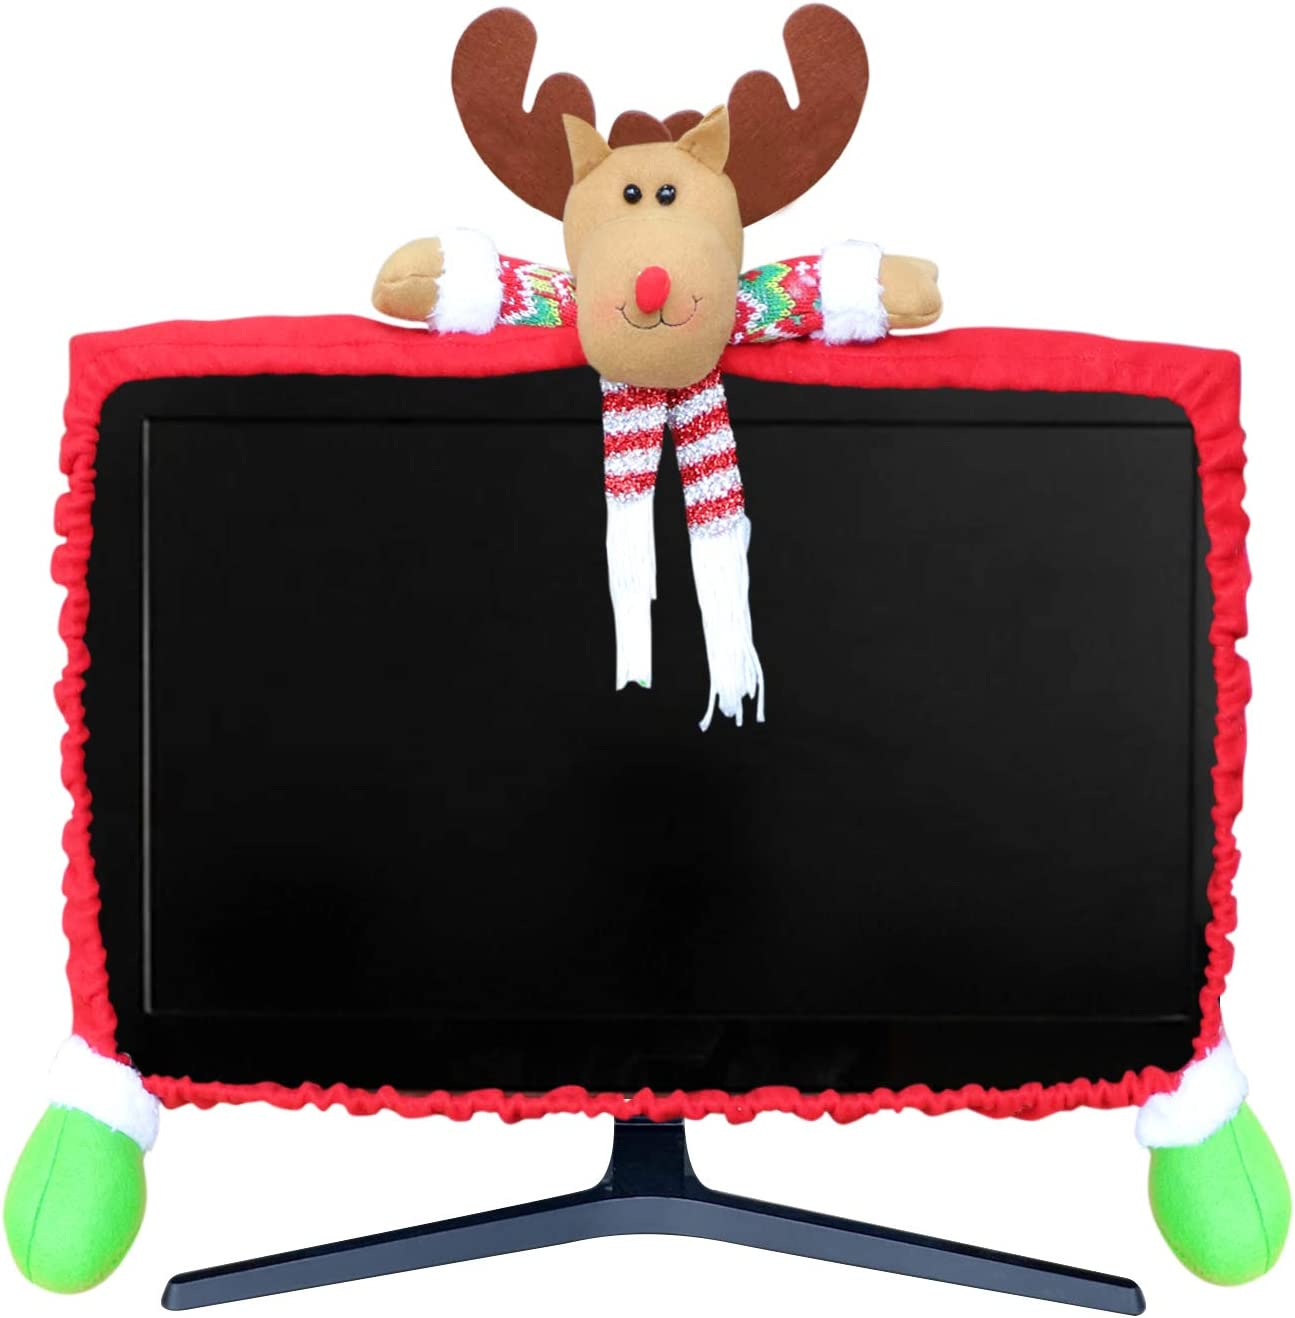 MNKXL Christmas Monitor Cover 3D Elk Christmas Decoration Elastic Adjustable Computer Monitor Cover for Home Office Decor Laptop Display Dustproof Cover Monitor Screen Protector